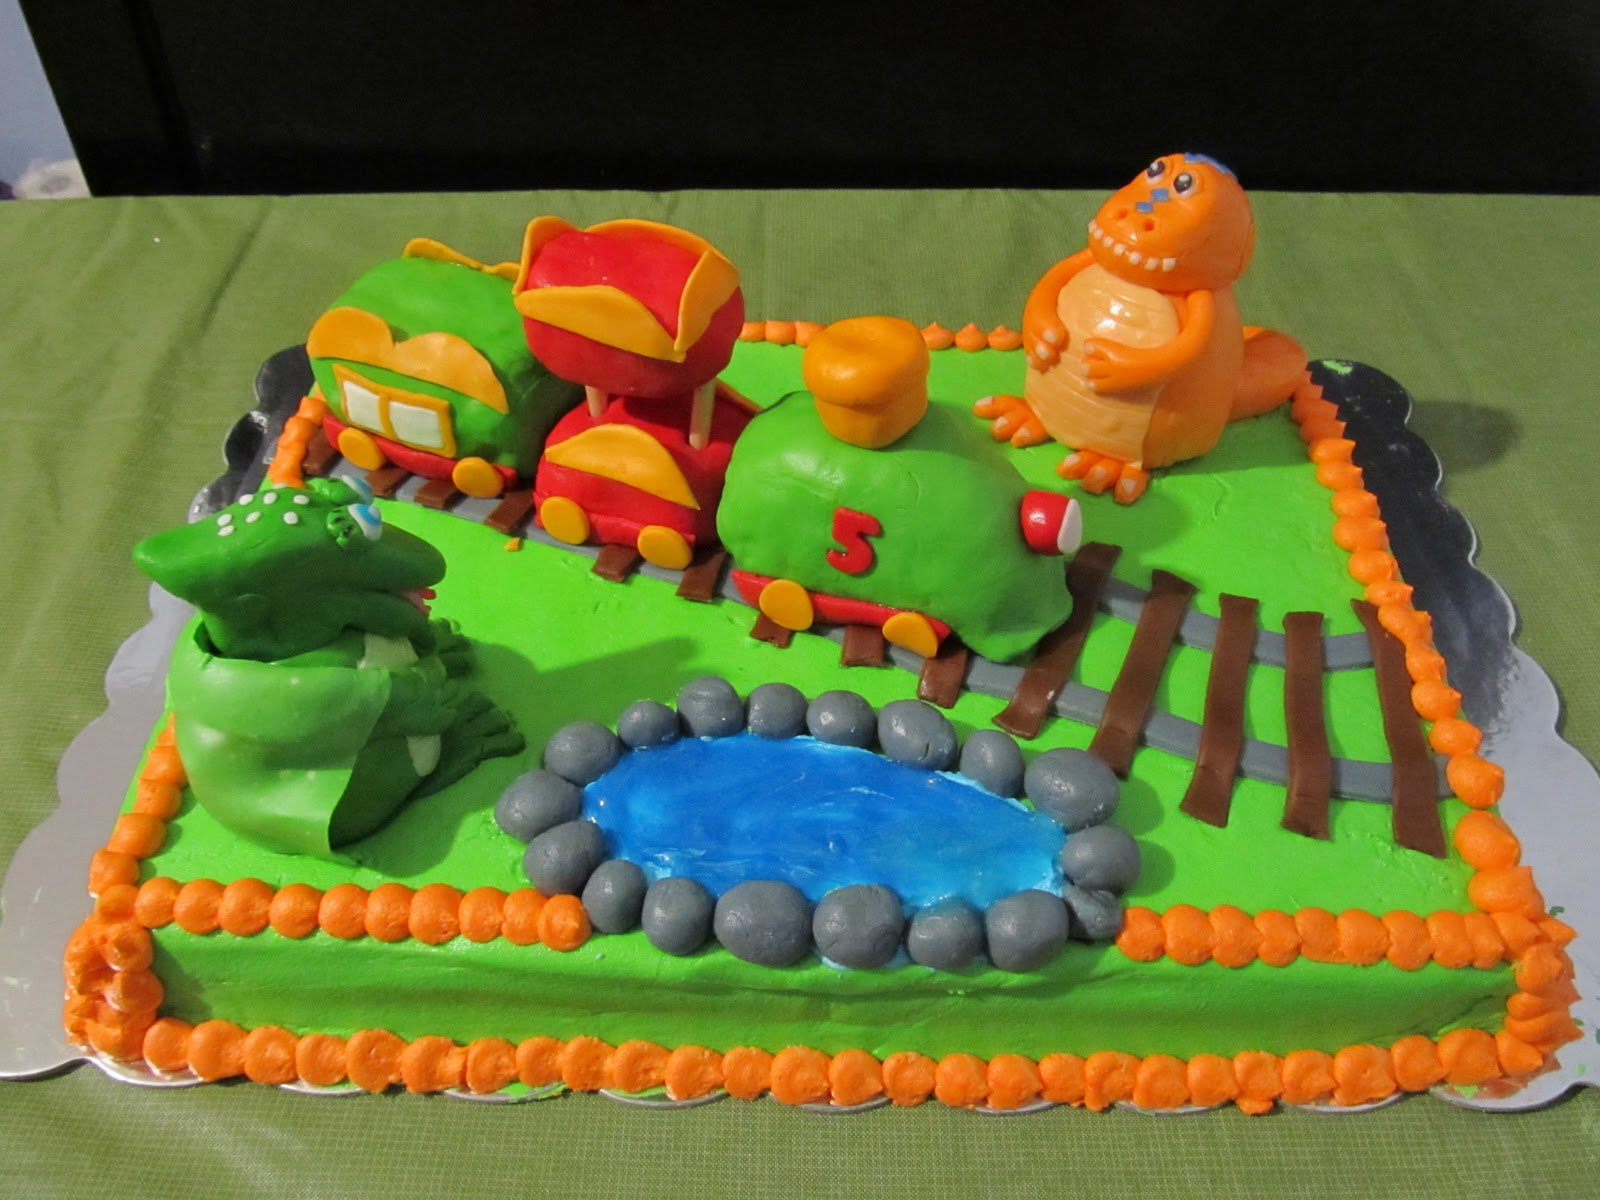 Dinosaur Train Cake Images : YAYA CREATIONS 3: Dinosaur Train cake